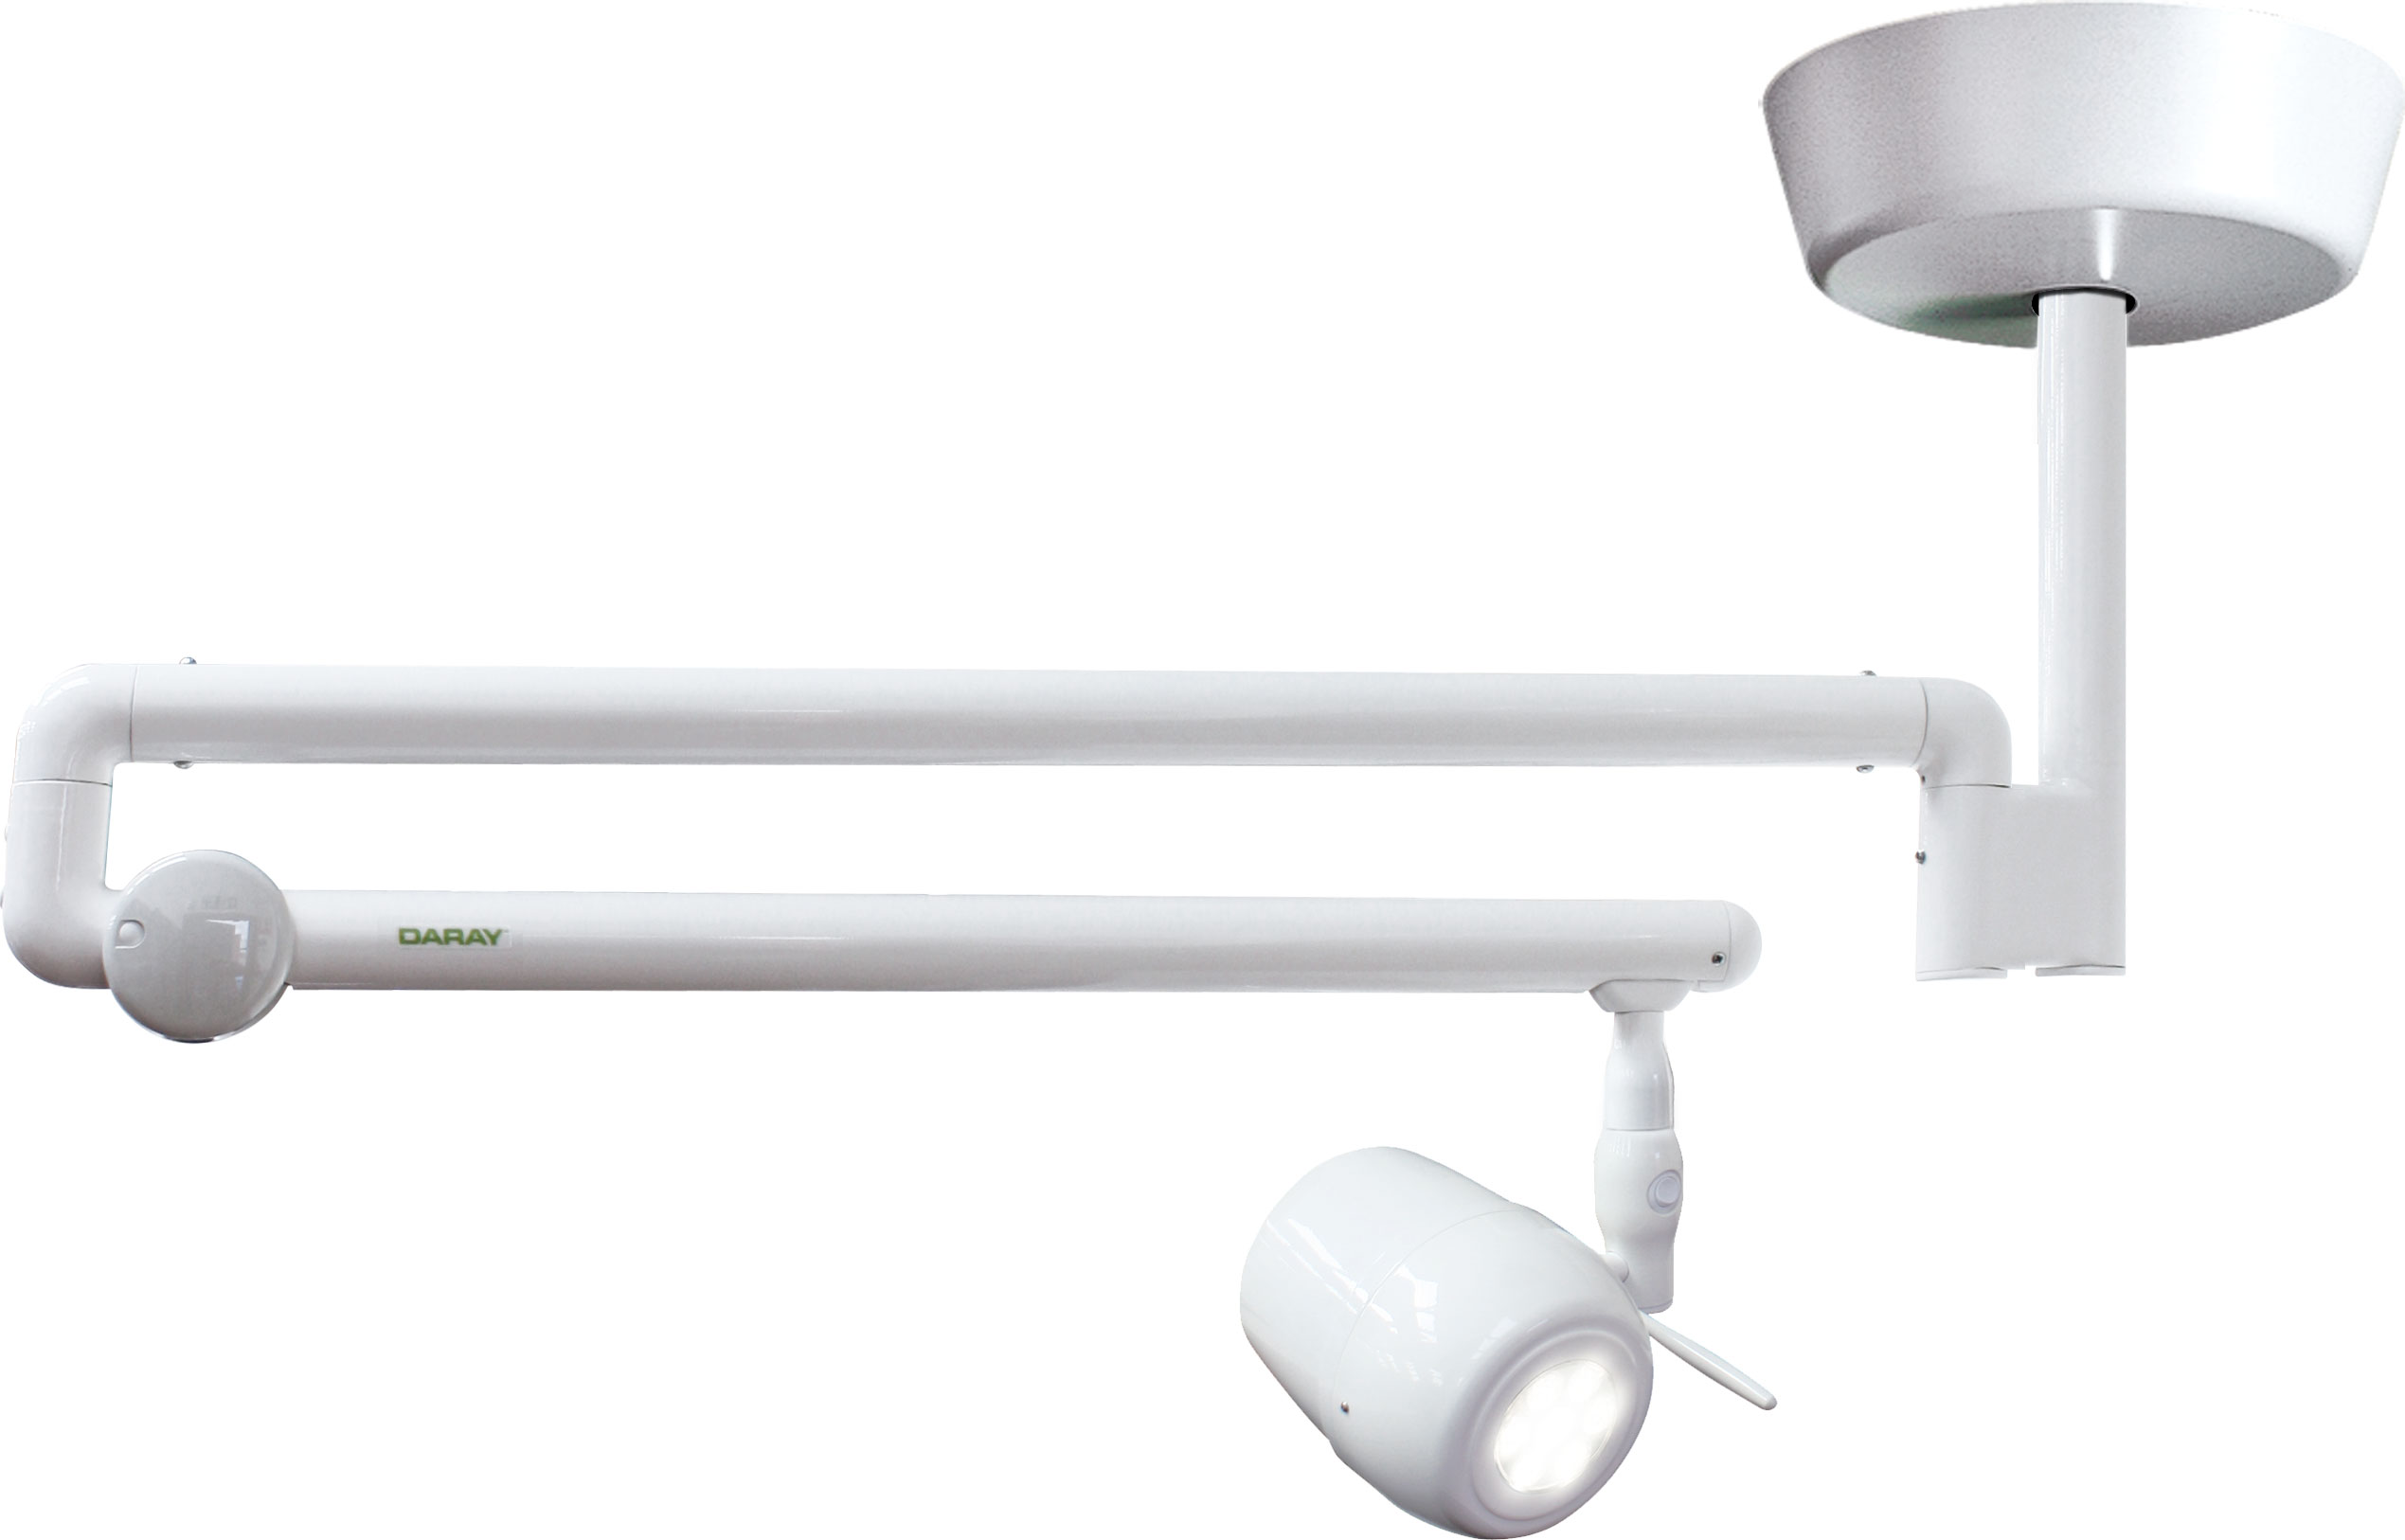 Daray X400 LED Light Ceiling Mounted | Medical Supermarket